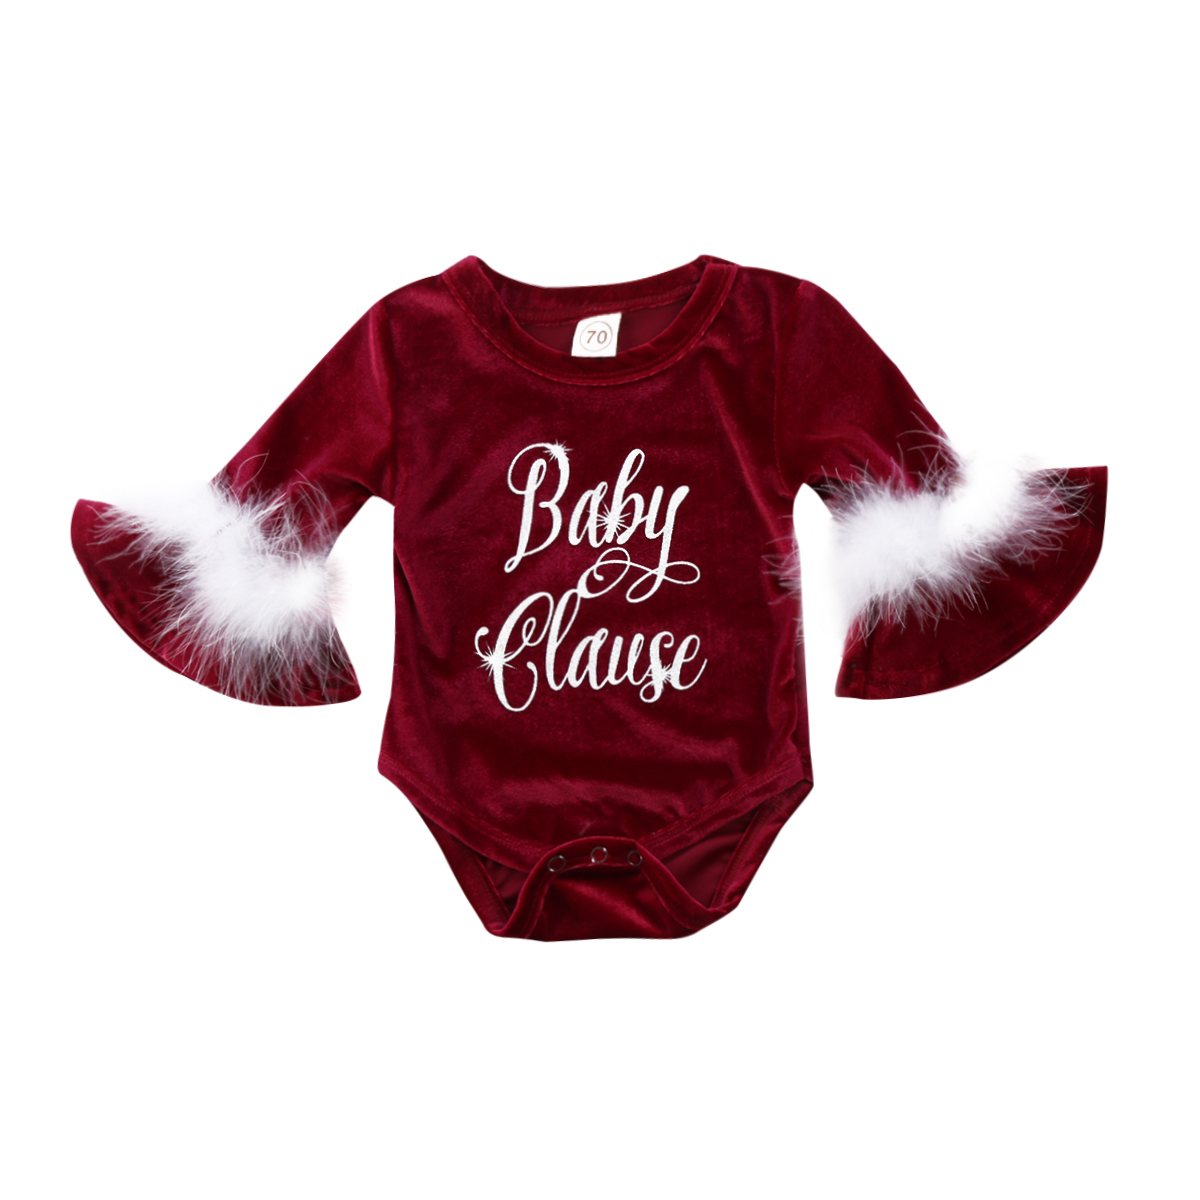 Pudcoco 2017 New Pleuche Christmas Baby Girls Romper long sleeves infant newborn baby jumpsuit princess plush clothes xmas gift baby clothes infant romper knitting clothes with long sleeves autumn newborn wear